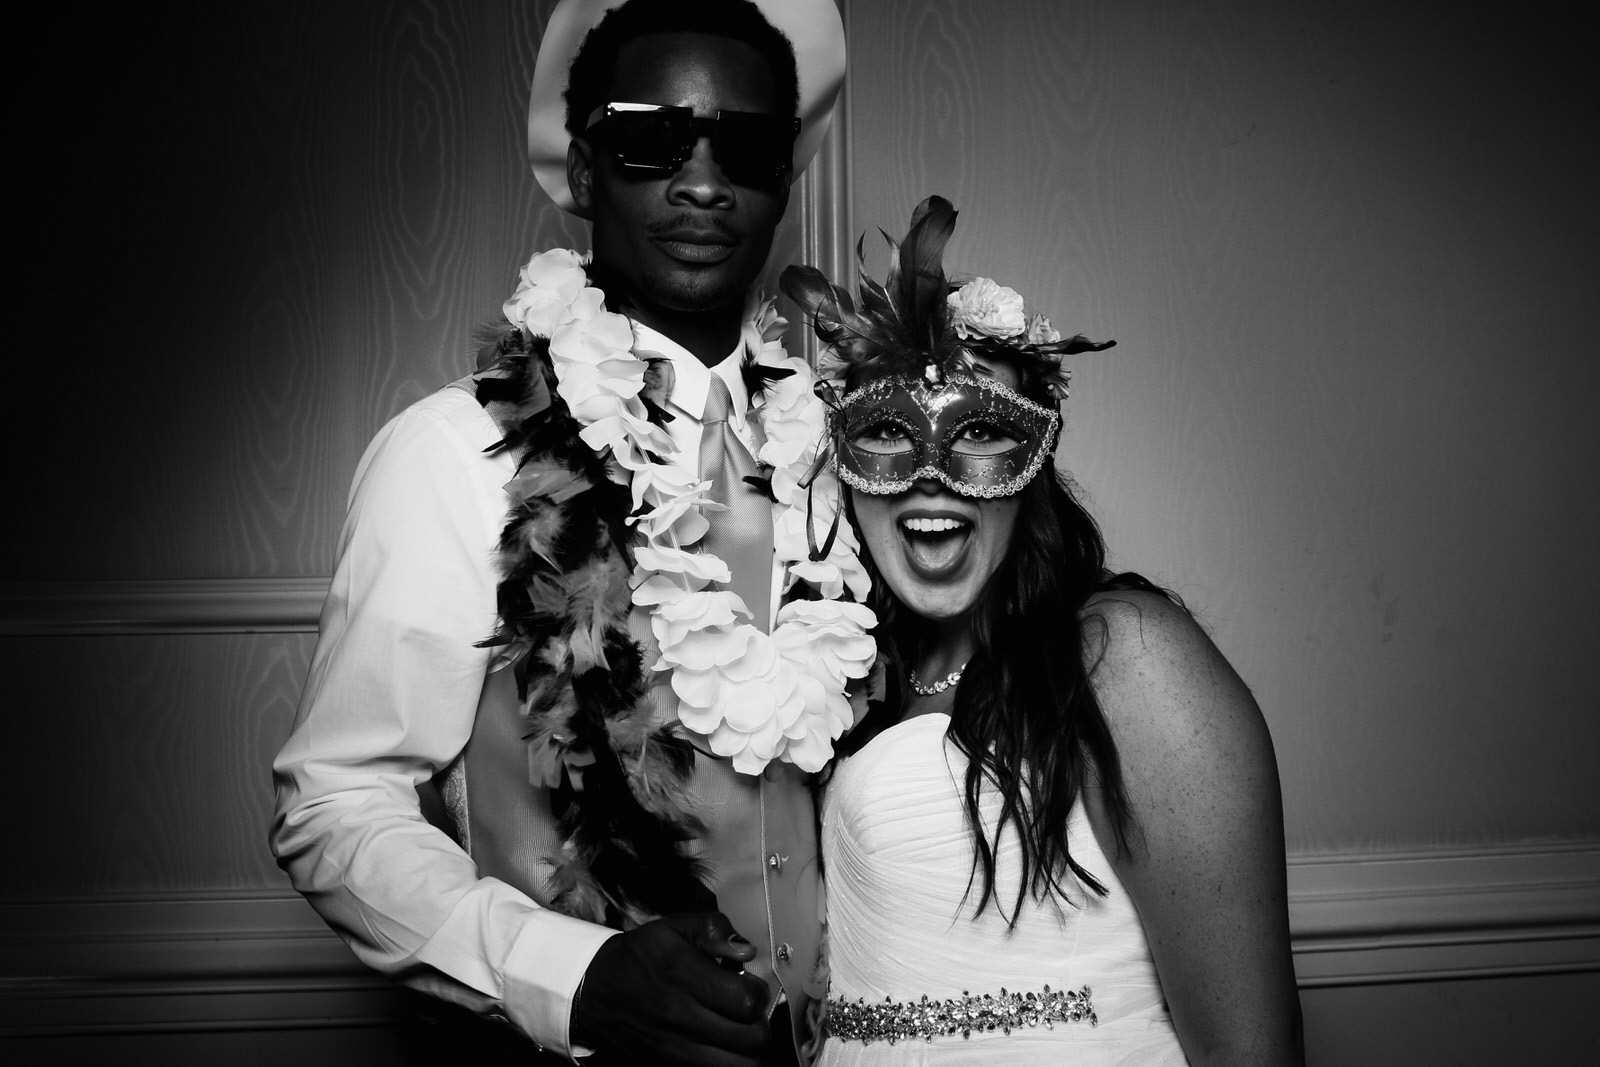 Ashley-Tyrone-Wedding-Photo-Booth-Presidential_Norristown-Wedding-10.jpg